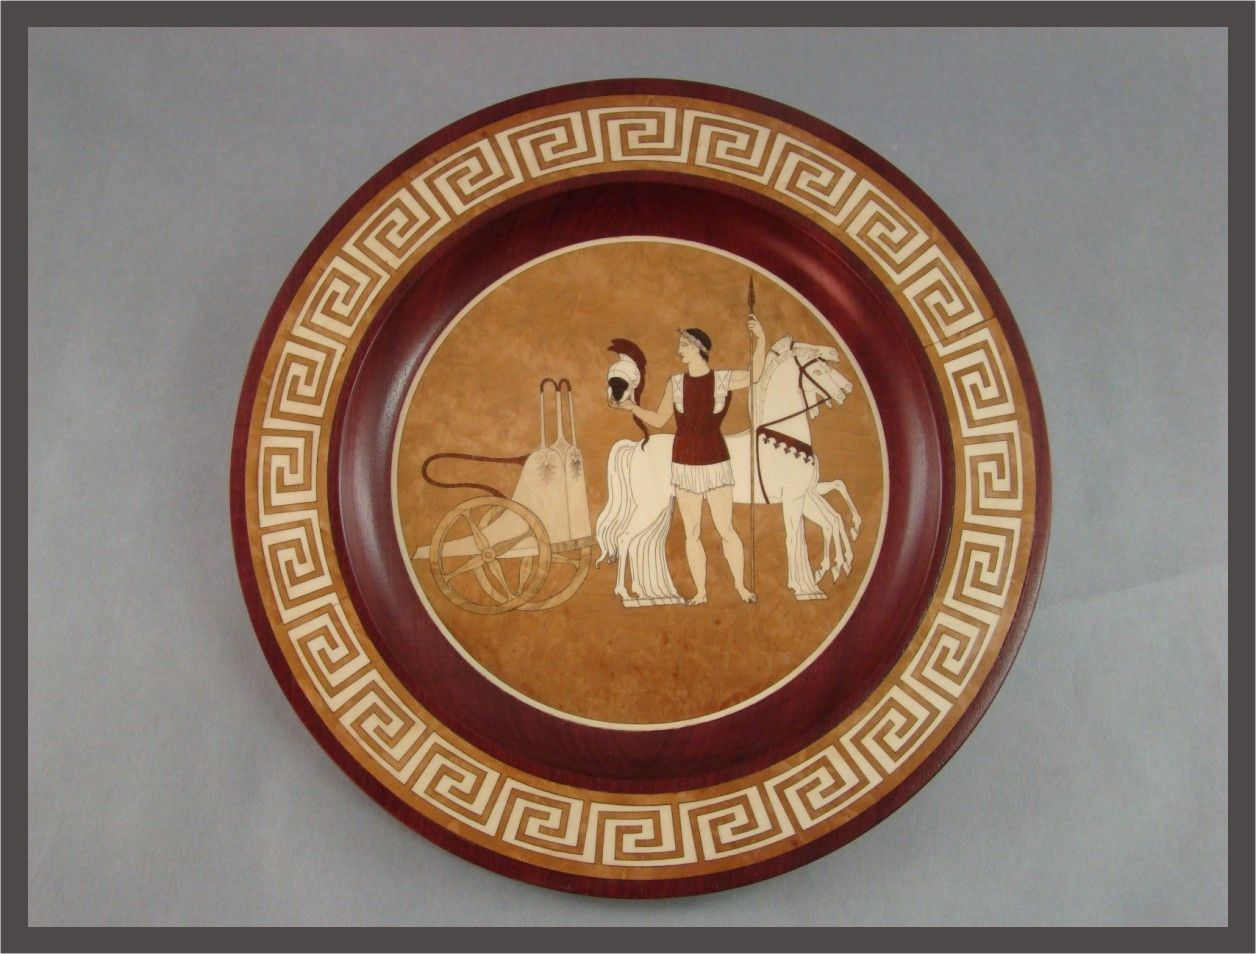 Hand Made Greek Plate By Mwb Studios